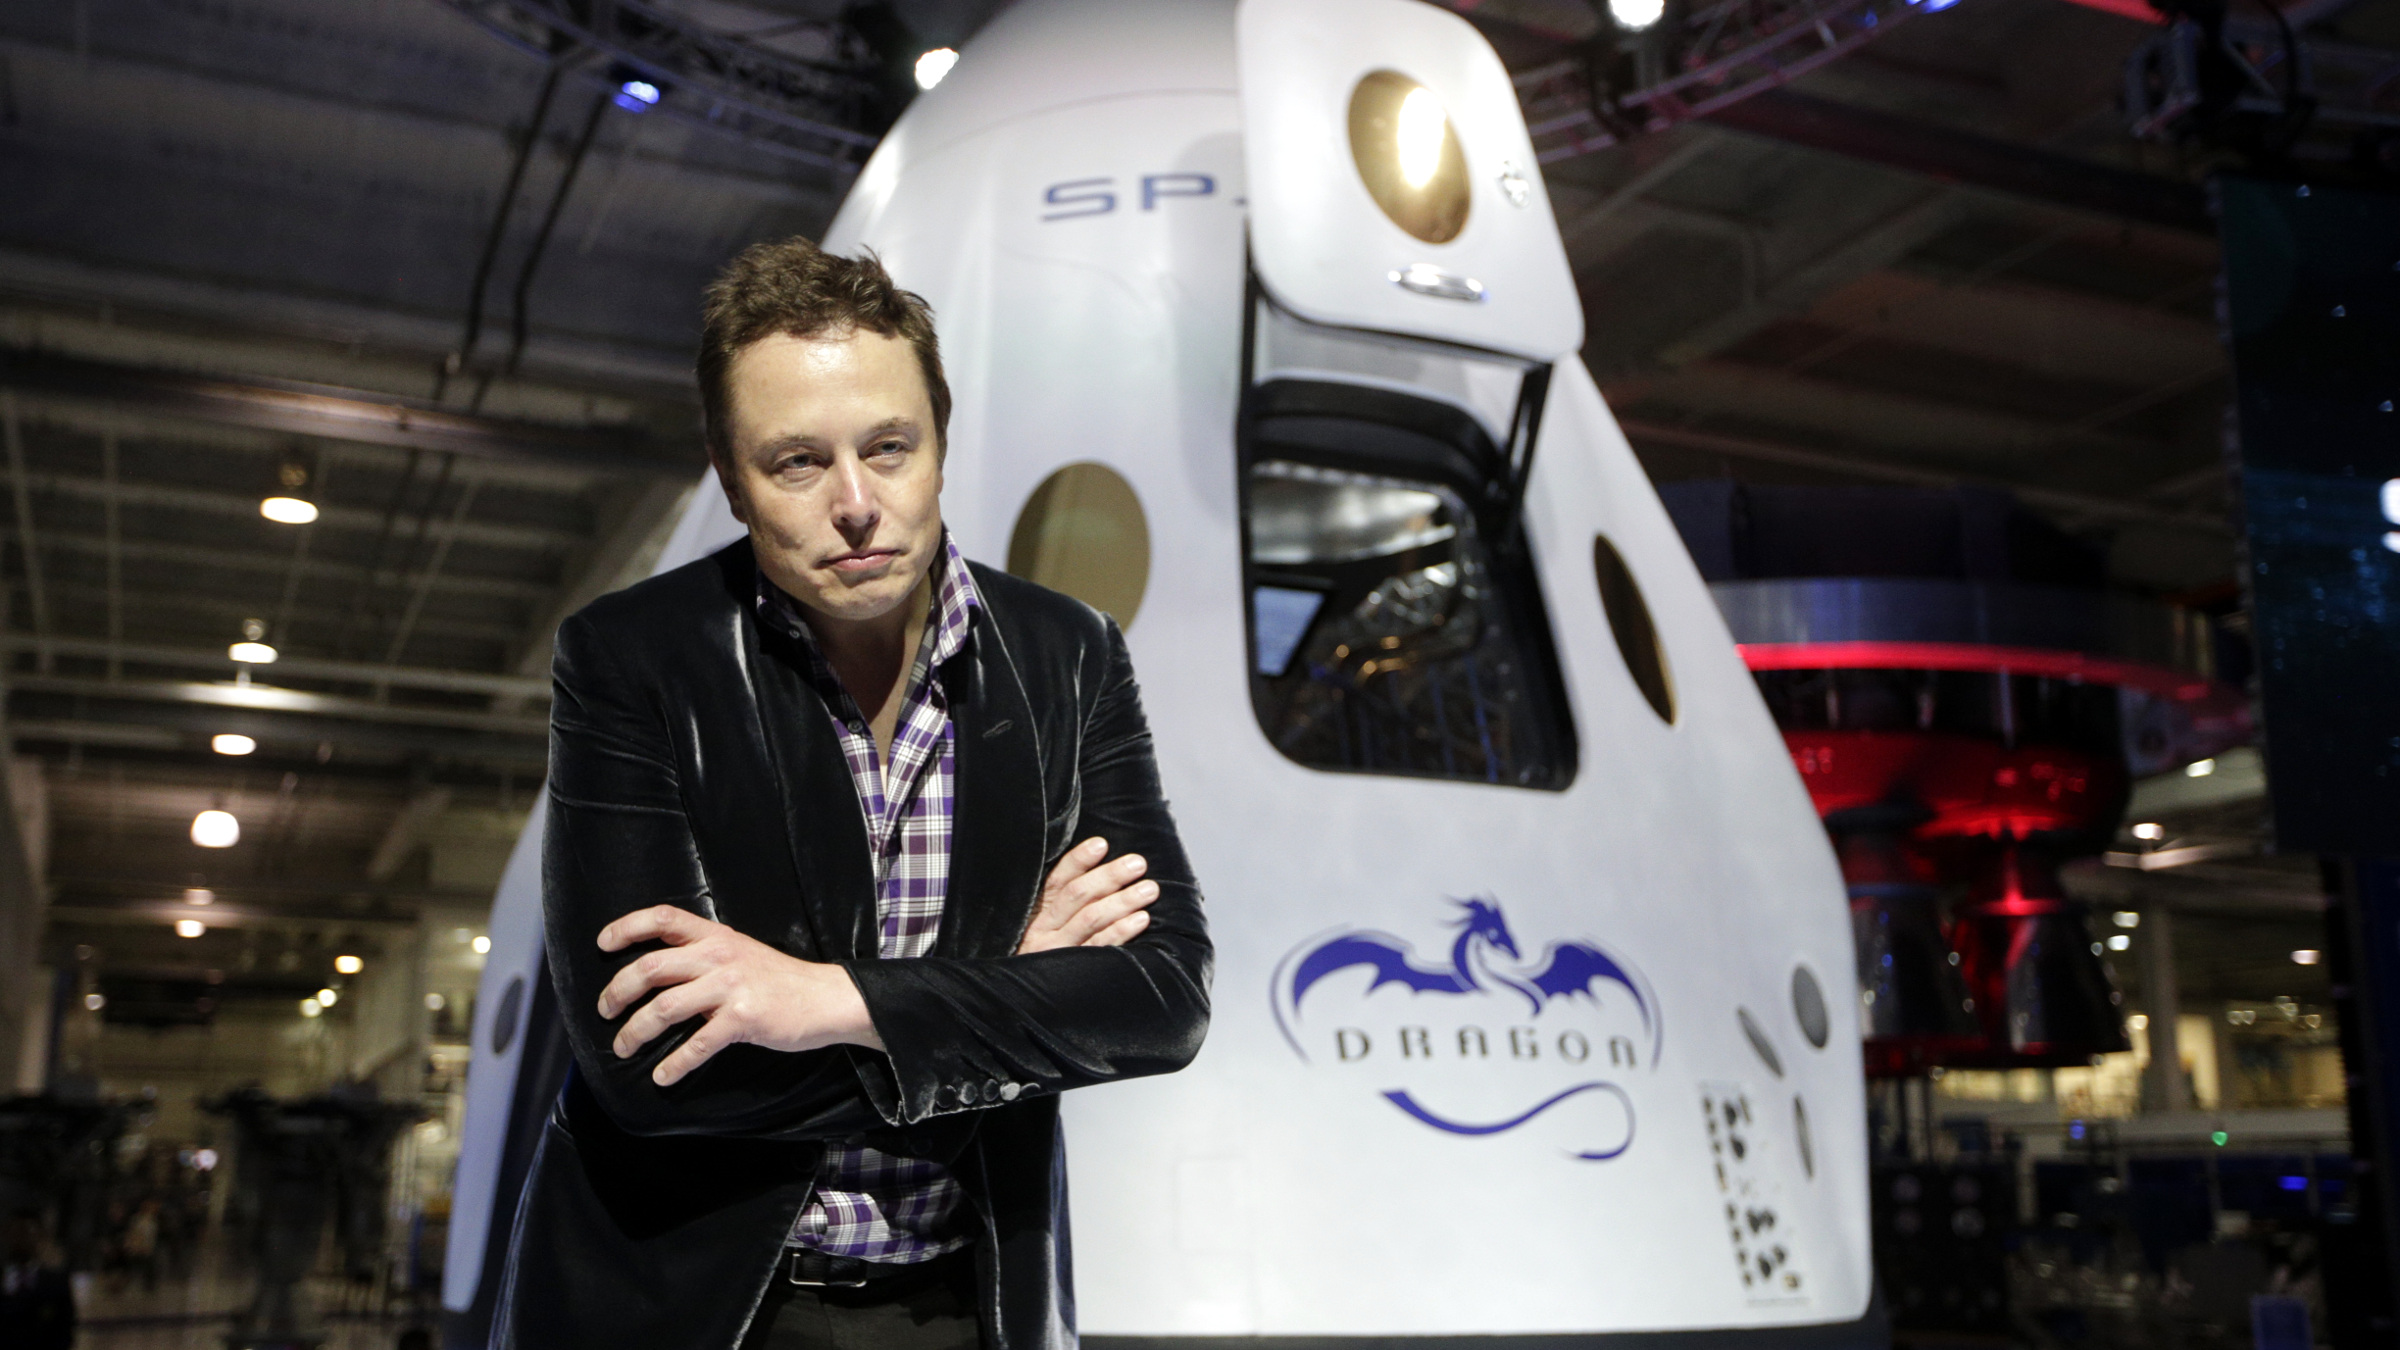 "In this Thursday, May 29, 2014 file photo, Elon Musk, CEO and CTO of SpaceX, listens to a question during a news conference in front of the SpaceX Dragon V2 spacecraft, designed to ferry astronauts to low-Earth orbit, at the headquarters in Hawthorne, Calif. The capsule was named for ""Puff the Magic Dragon,"" a jab at those who scoffed when Musk founded the company in 2002 and set the space bar exceedingly high. SpaceX went on to become the first private company to launch a spacecraft into orbit and return it safely to Earth in 2010."